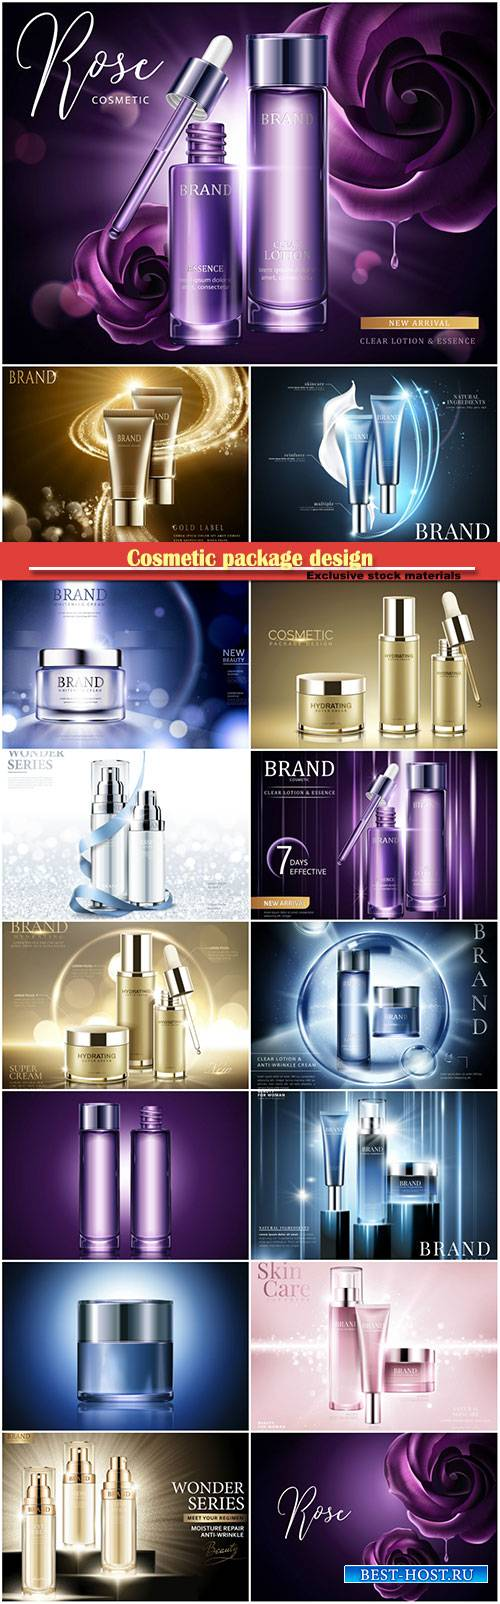 Cosmetic package design in 3d vector illustration